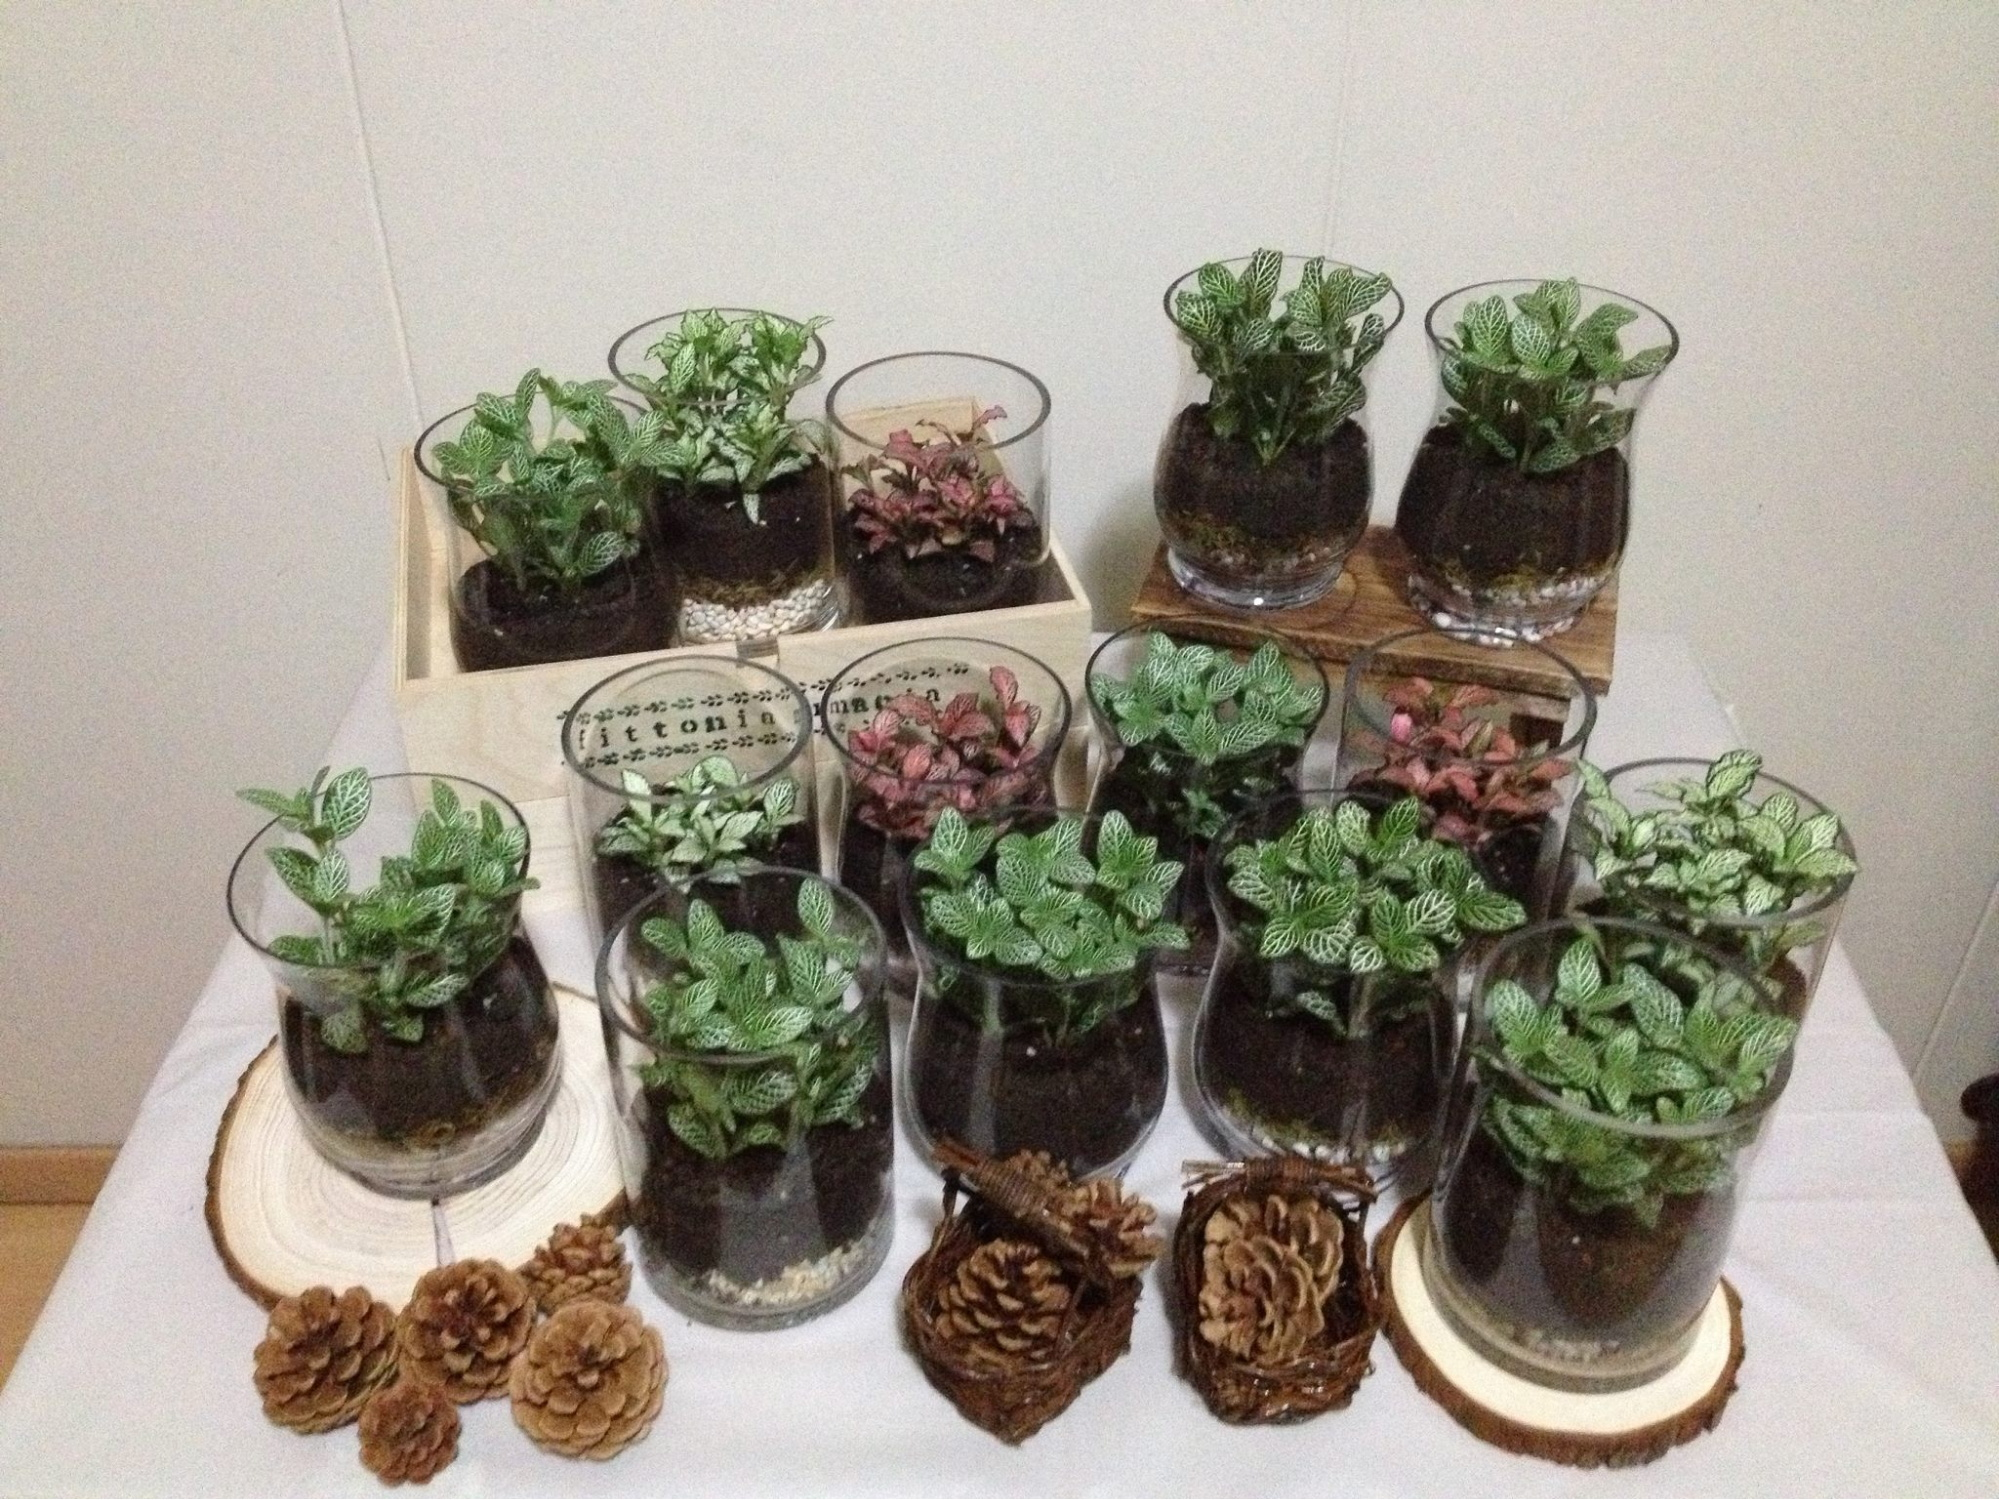 FittoniaMania terrariums